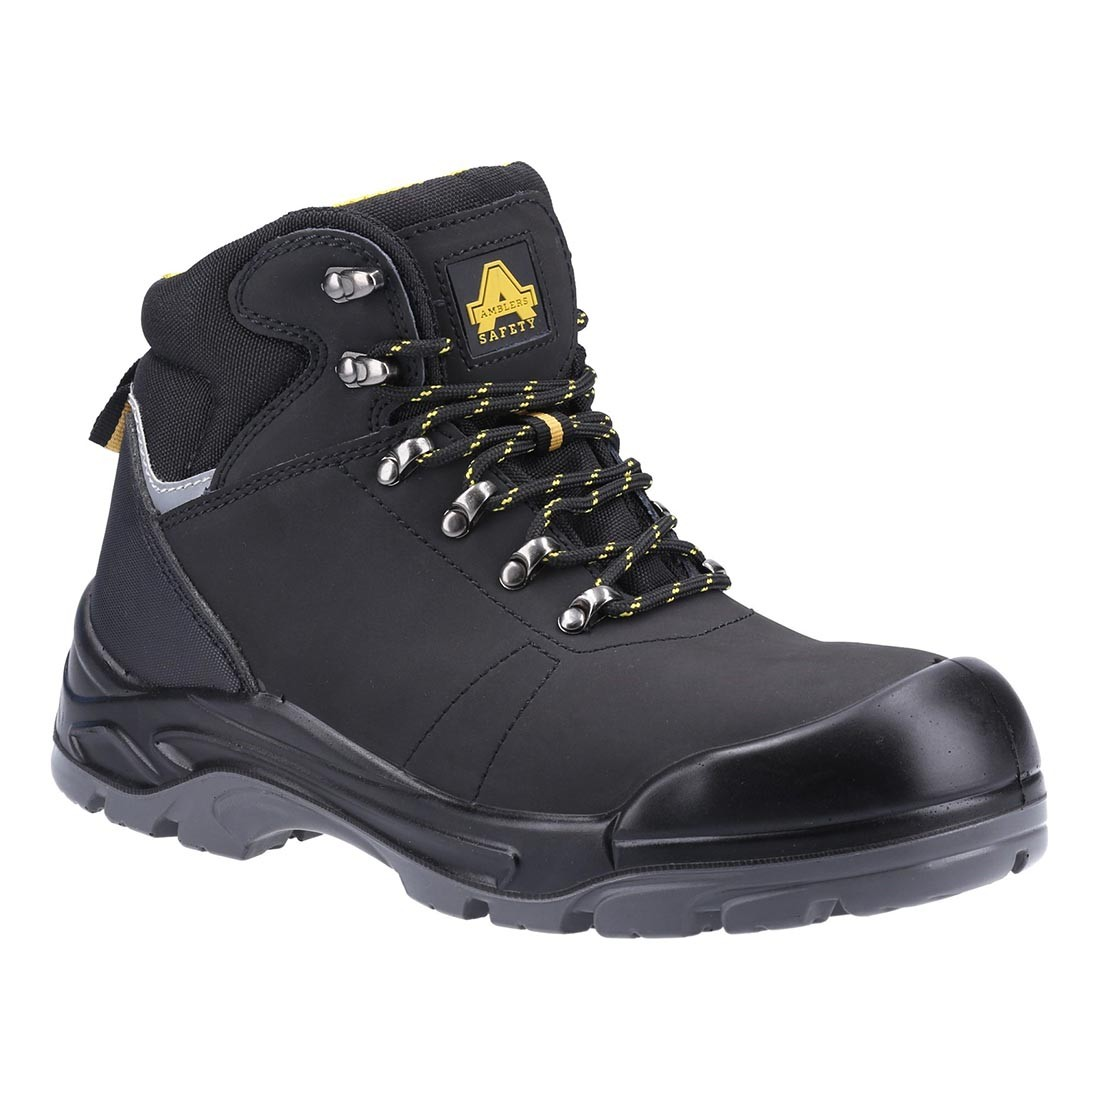 Amblers Safety AS252 Delamere Black Leather S3 SRC Safety Hiker Boots